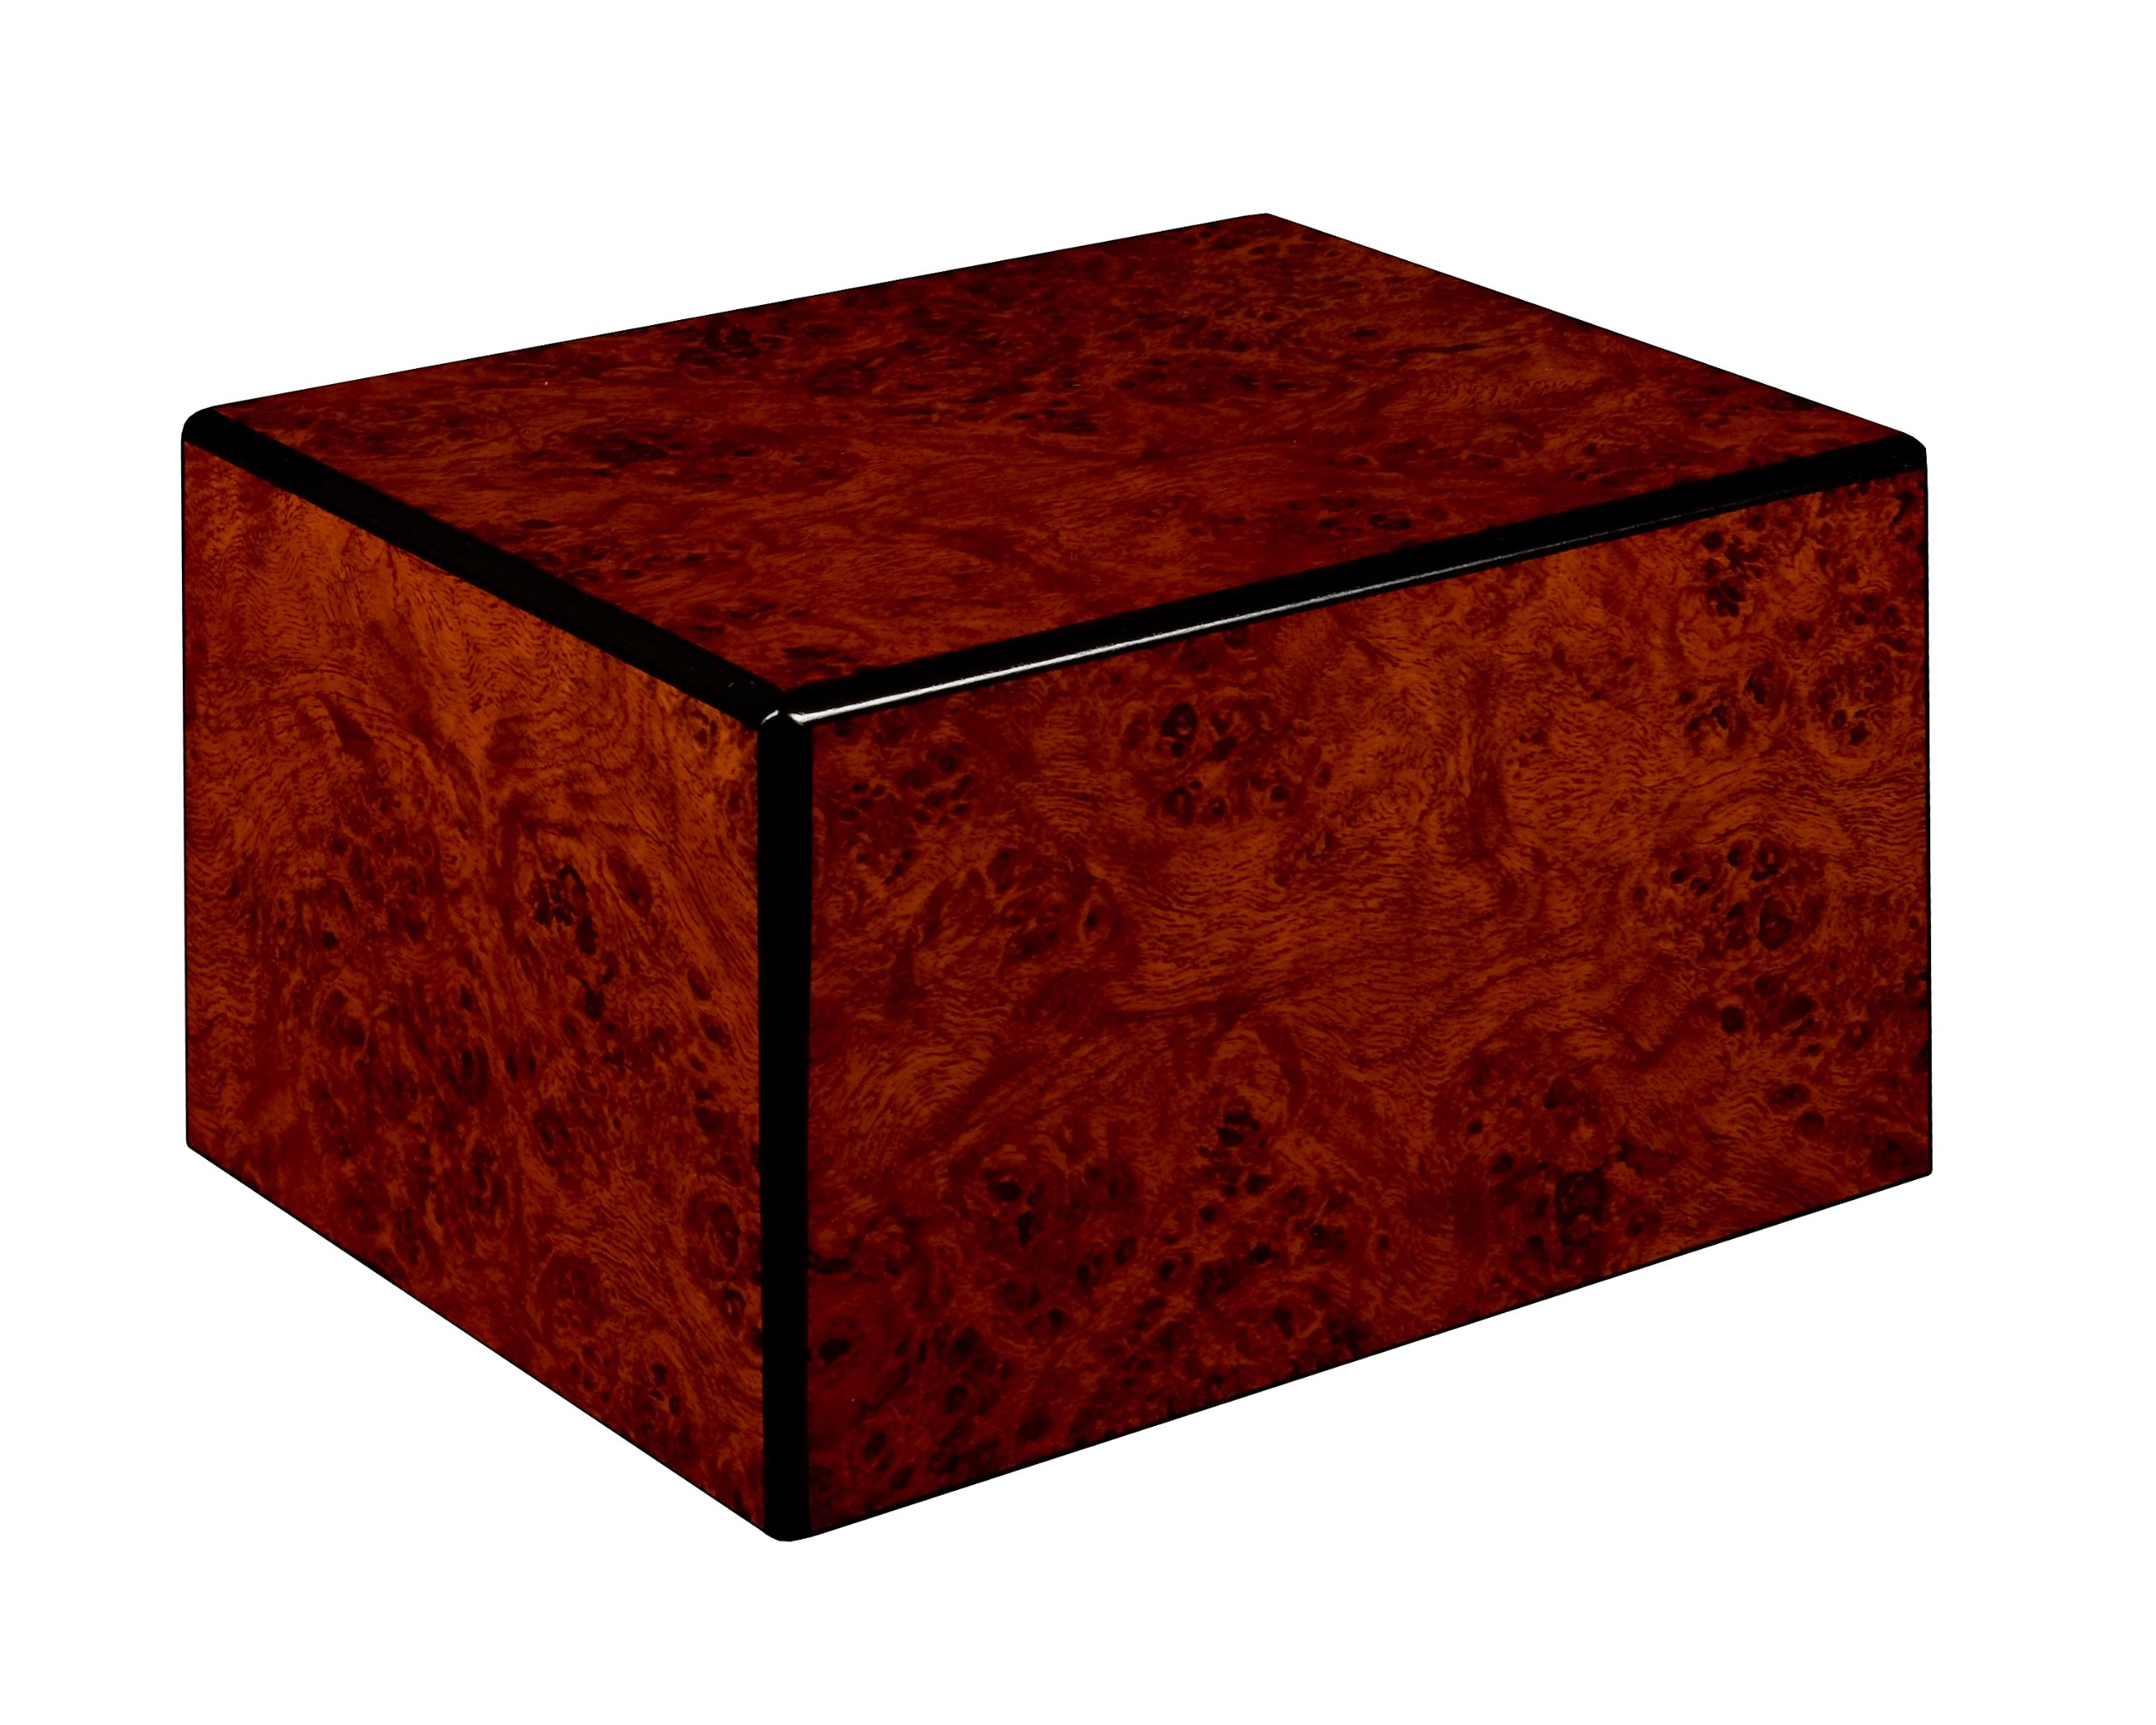 Chateau Urns Society Collection, Large Adult Cremation Urn, Burl Wood Finish by Chateau Urns